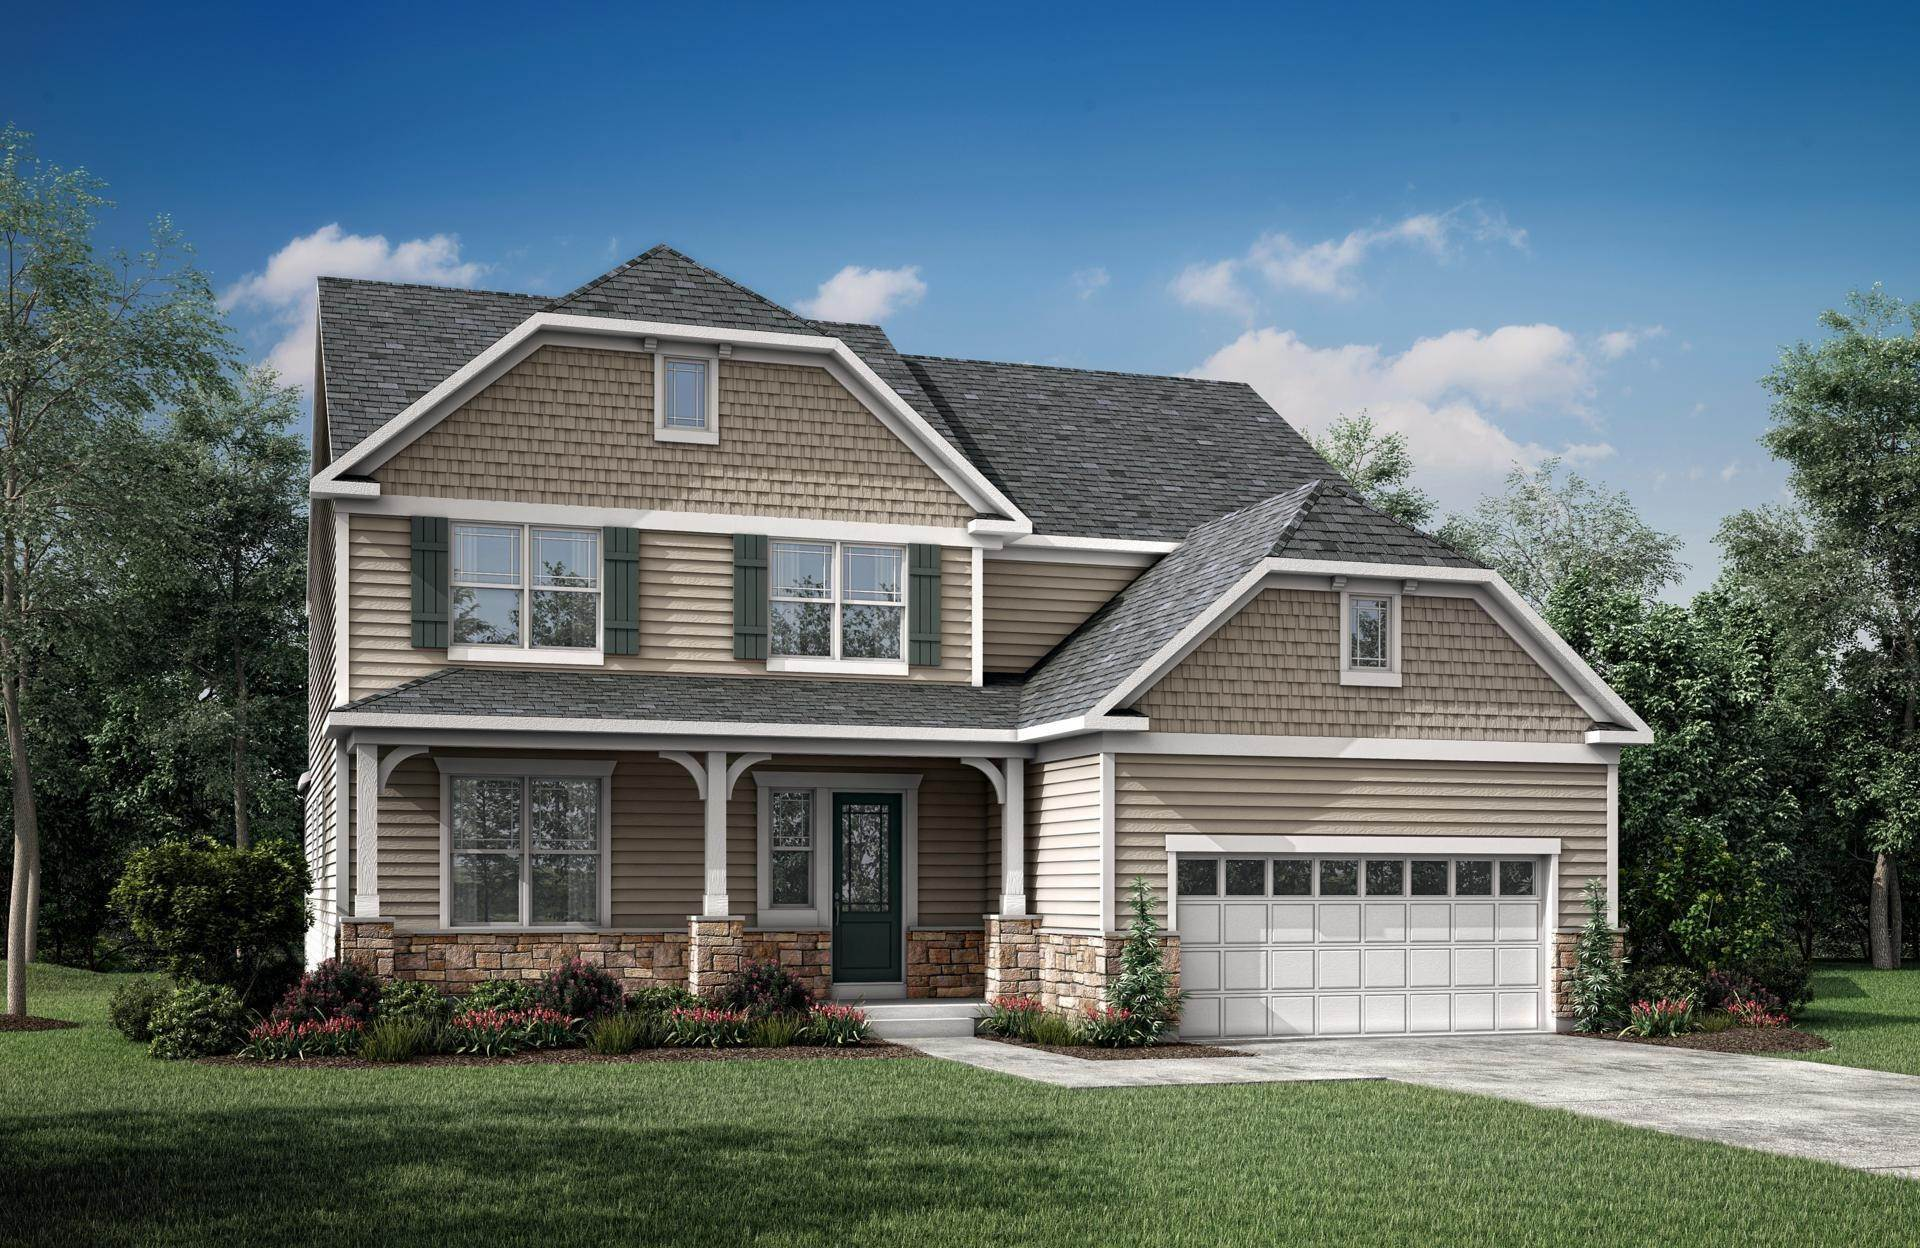 Single Family for Sale at Tallyn Ridge Estates - Rowan 8395 Pine Bluff Road FREDERICK, MARYLAND 21704 UNITED STATES